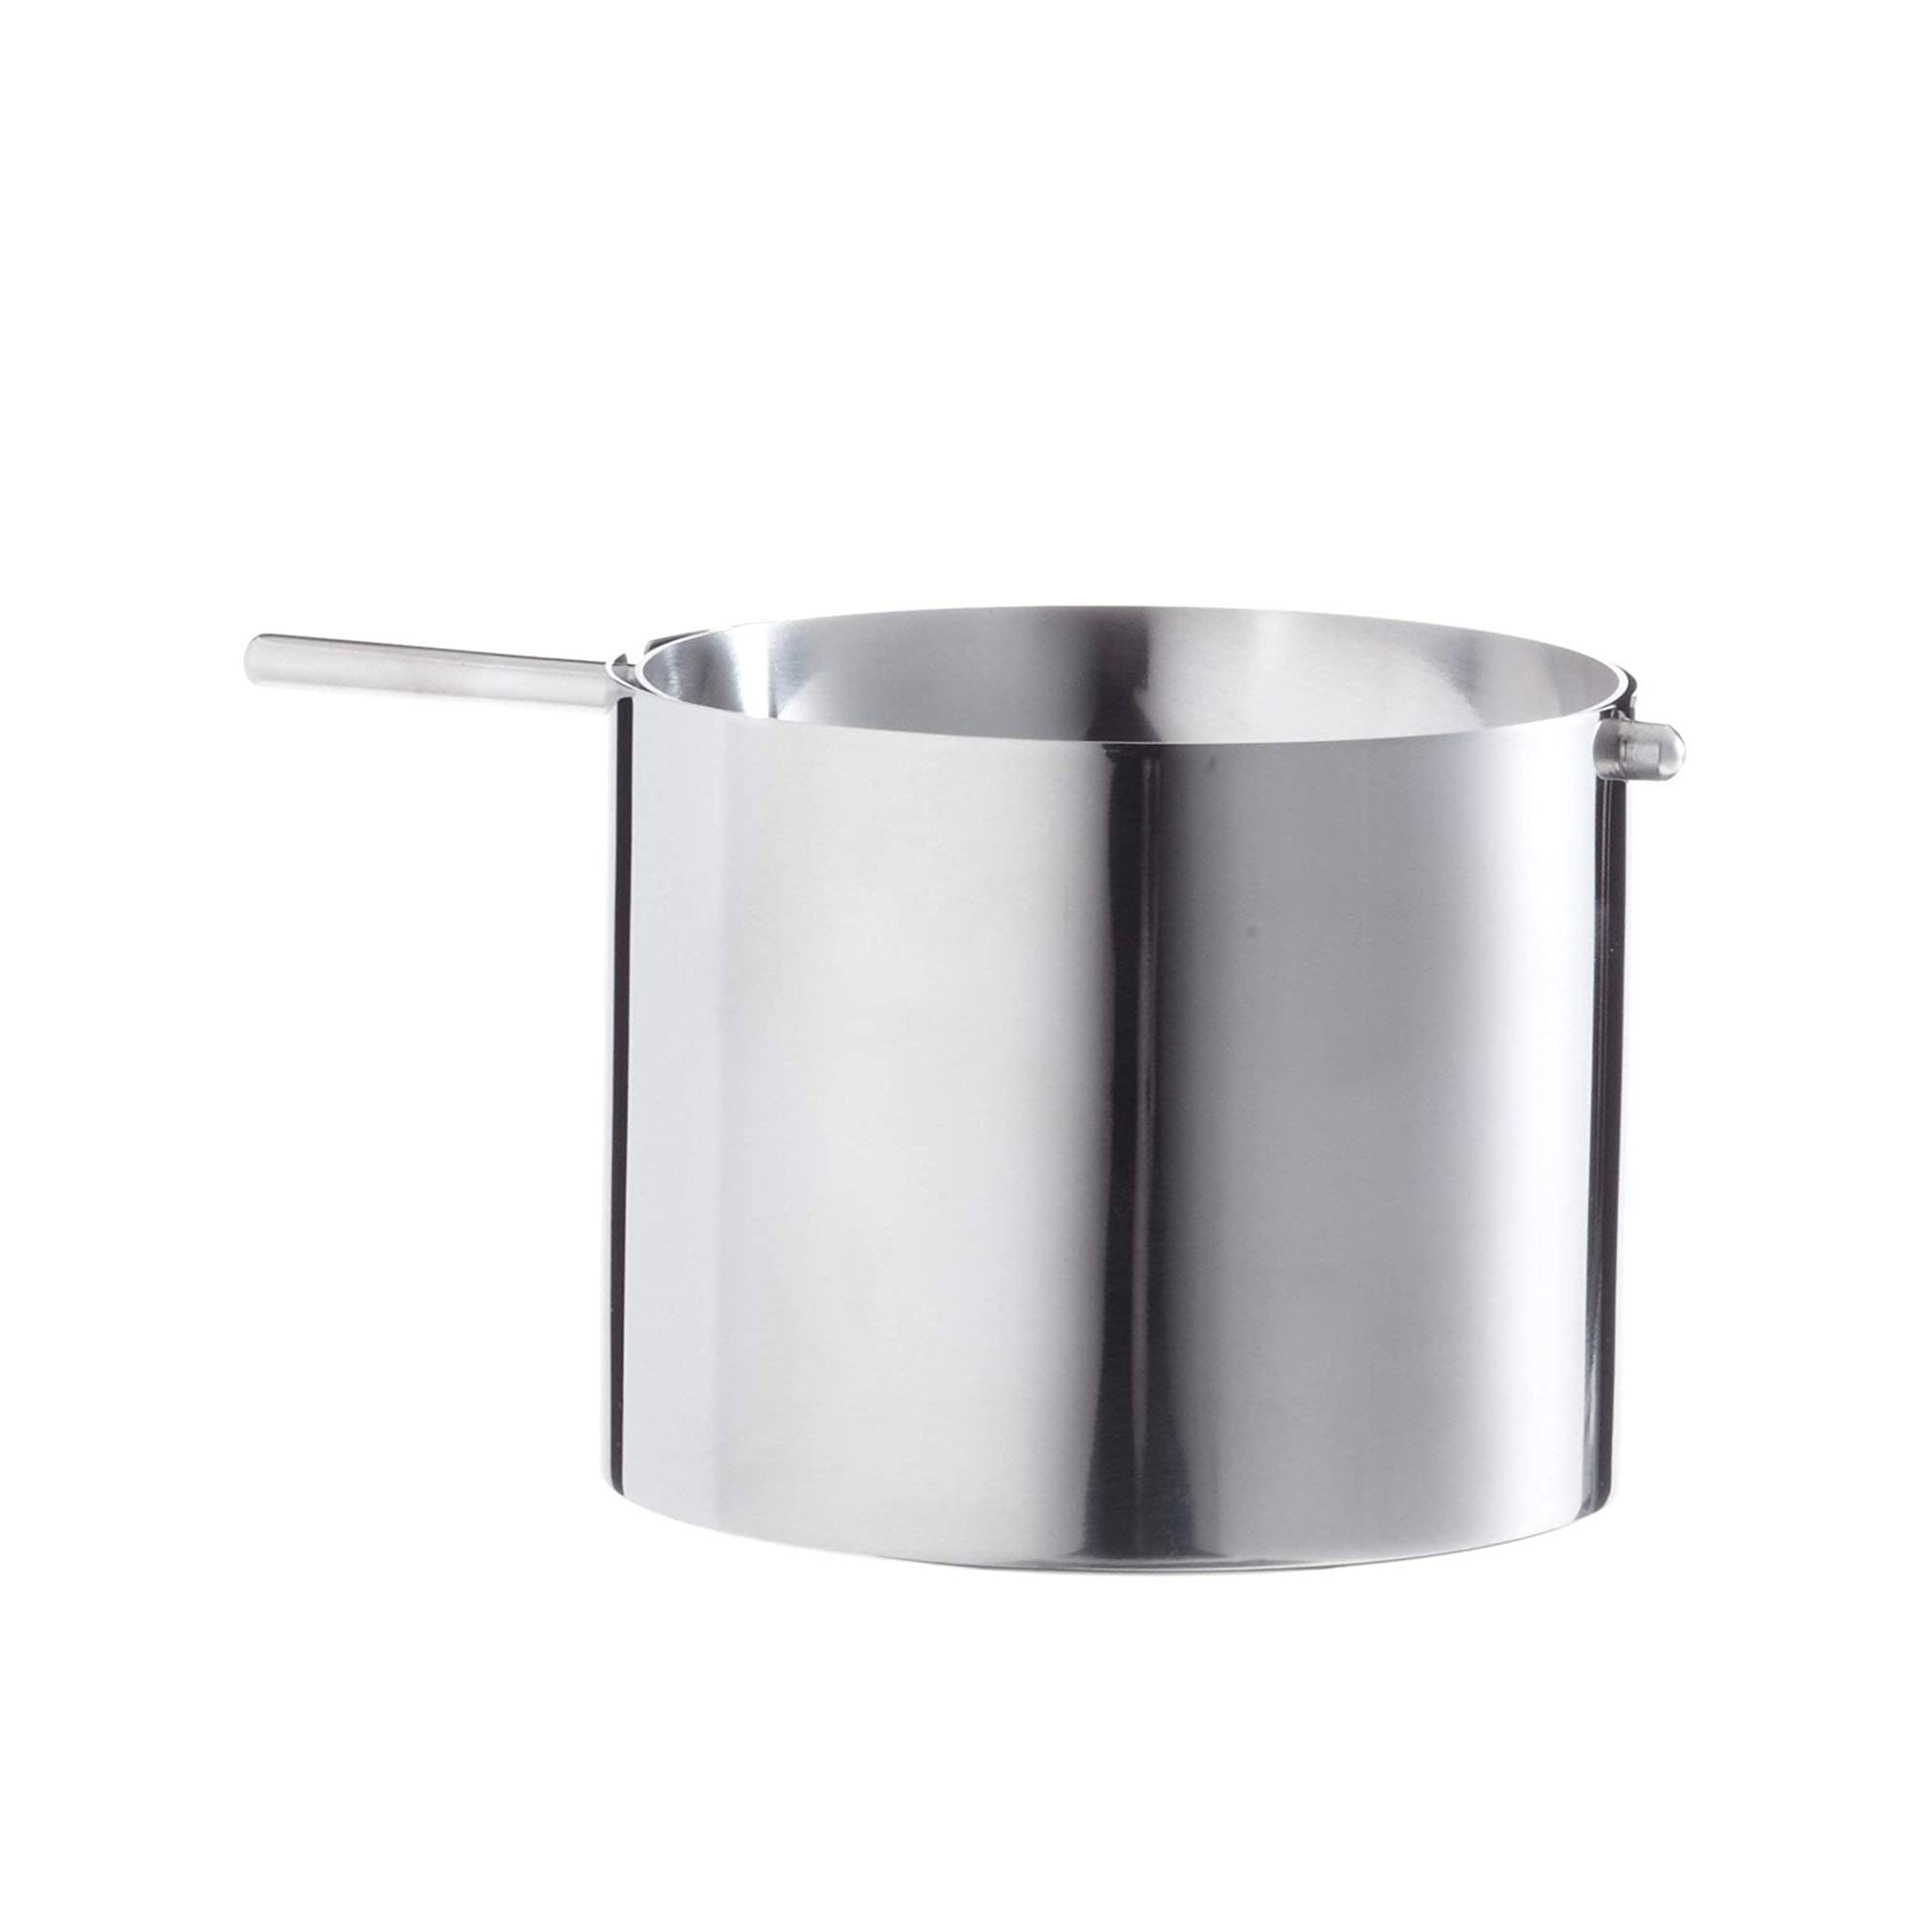 Stelton Revolving Ashtray Large